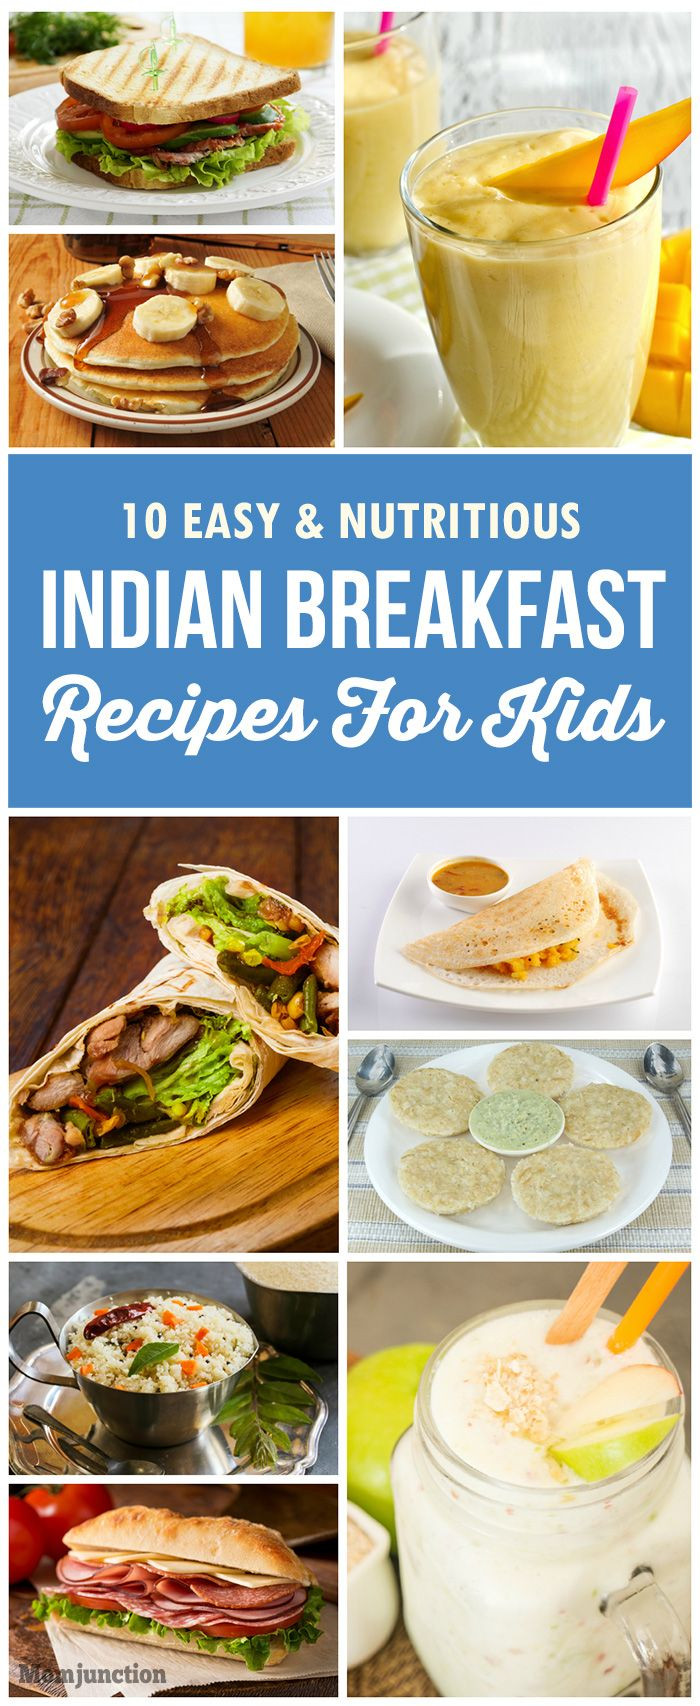 Tasty Breakfast Recipes  100 Indian Recipes For Kids on Pinterest